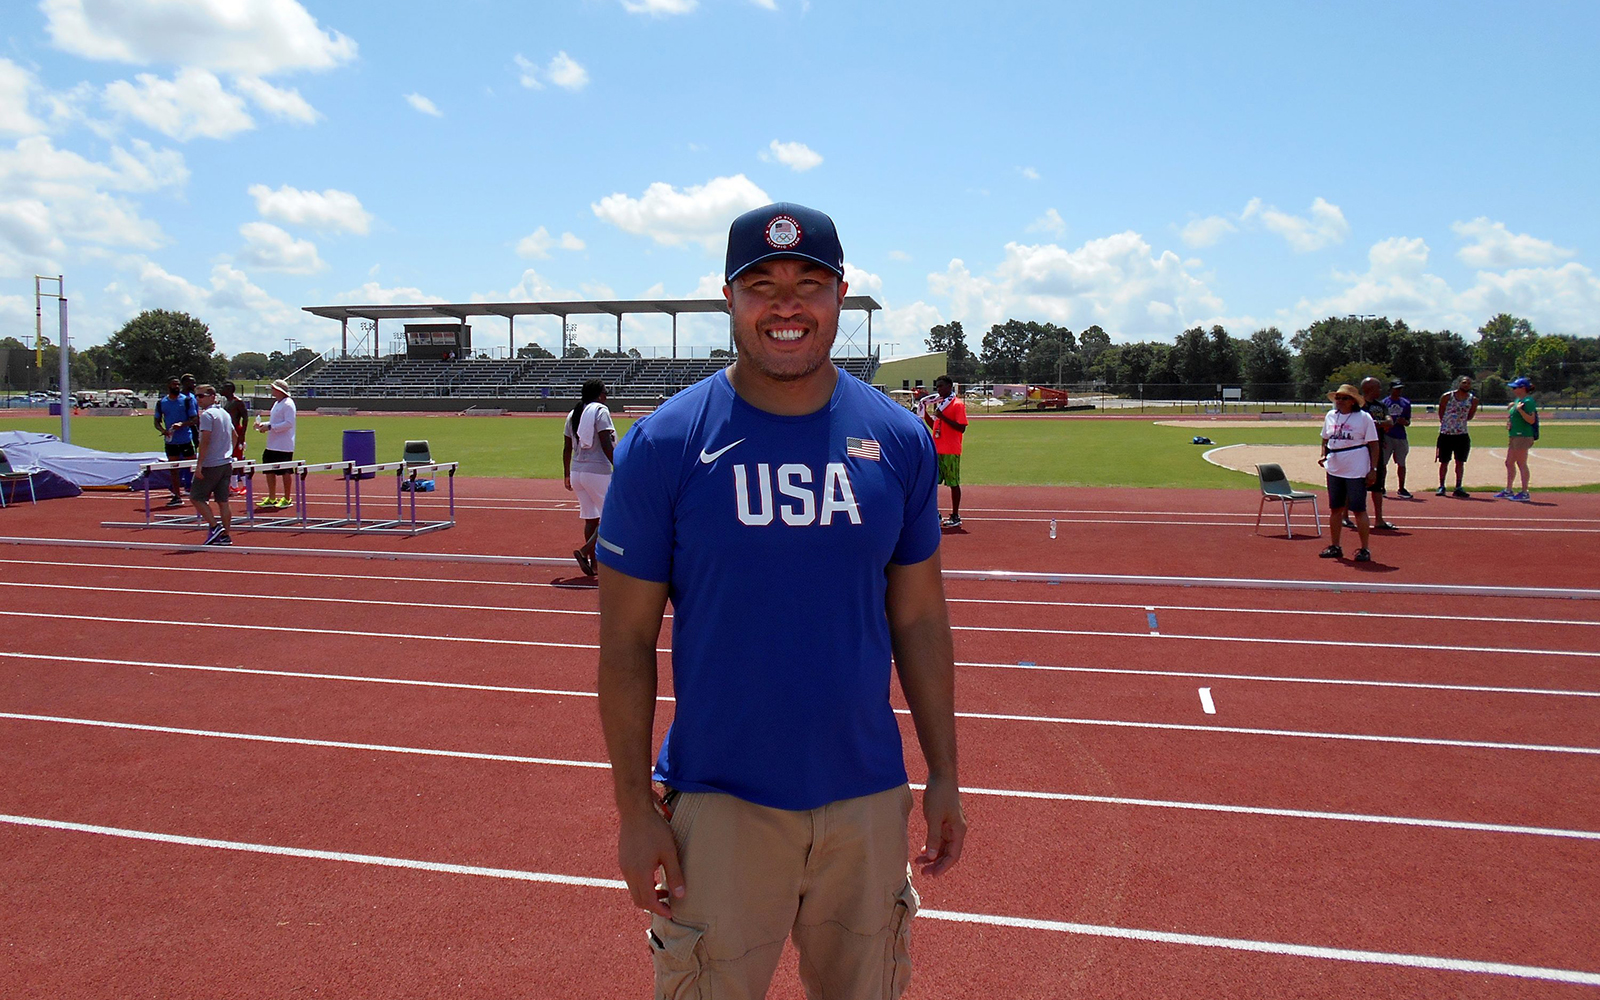 Chiropractor Norman Eng '99 (BUS) is a member of the medical team supporting America's top athletes at the Olympics. (Photo courtesy of Norman Eng)